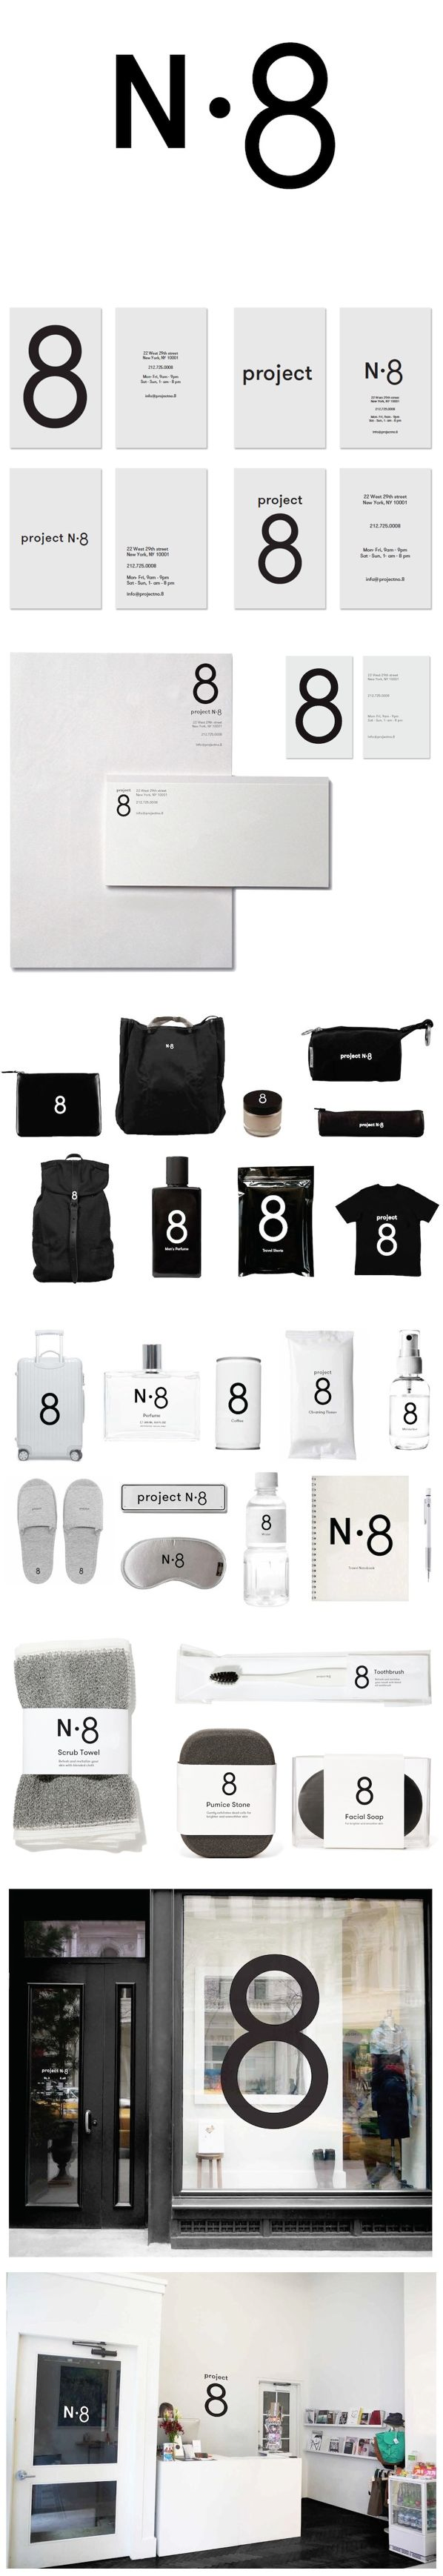 No. 8 #identity #packaging #branding #marketing PD